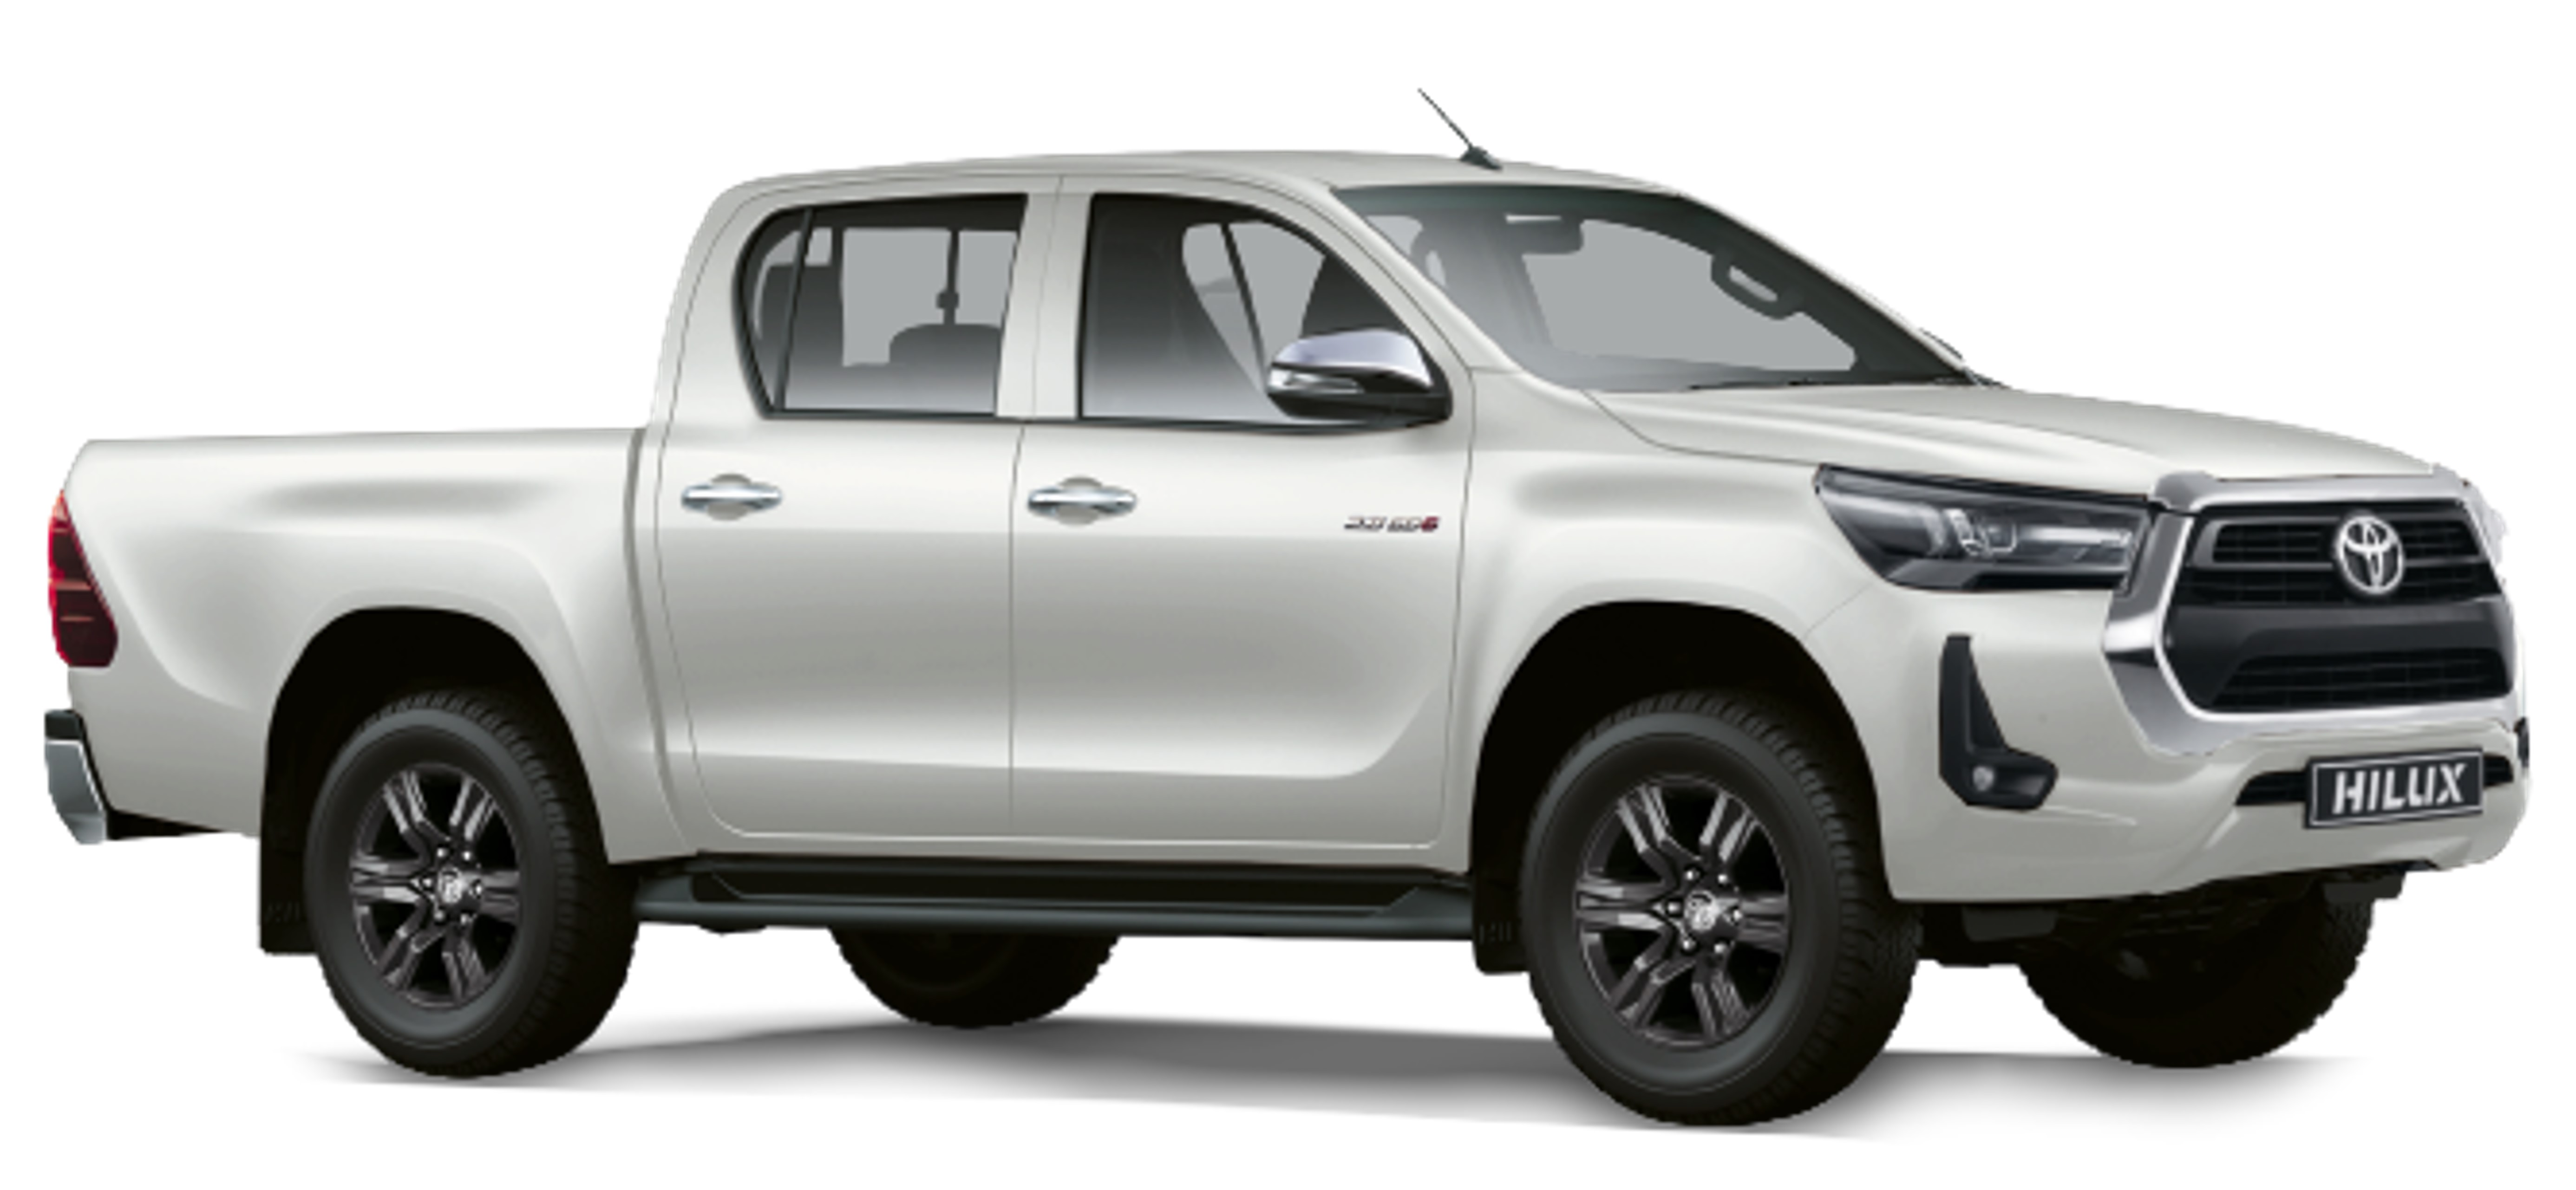 Hilux 2.8 DC RB Raider Auto for R7 399pm banner